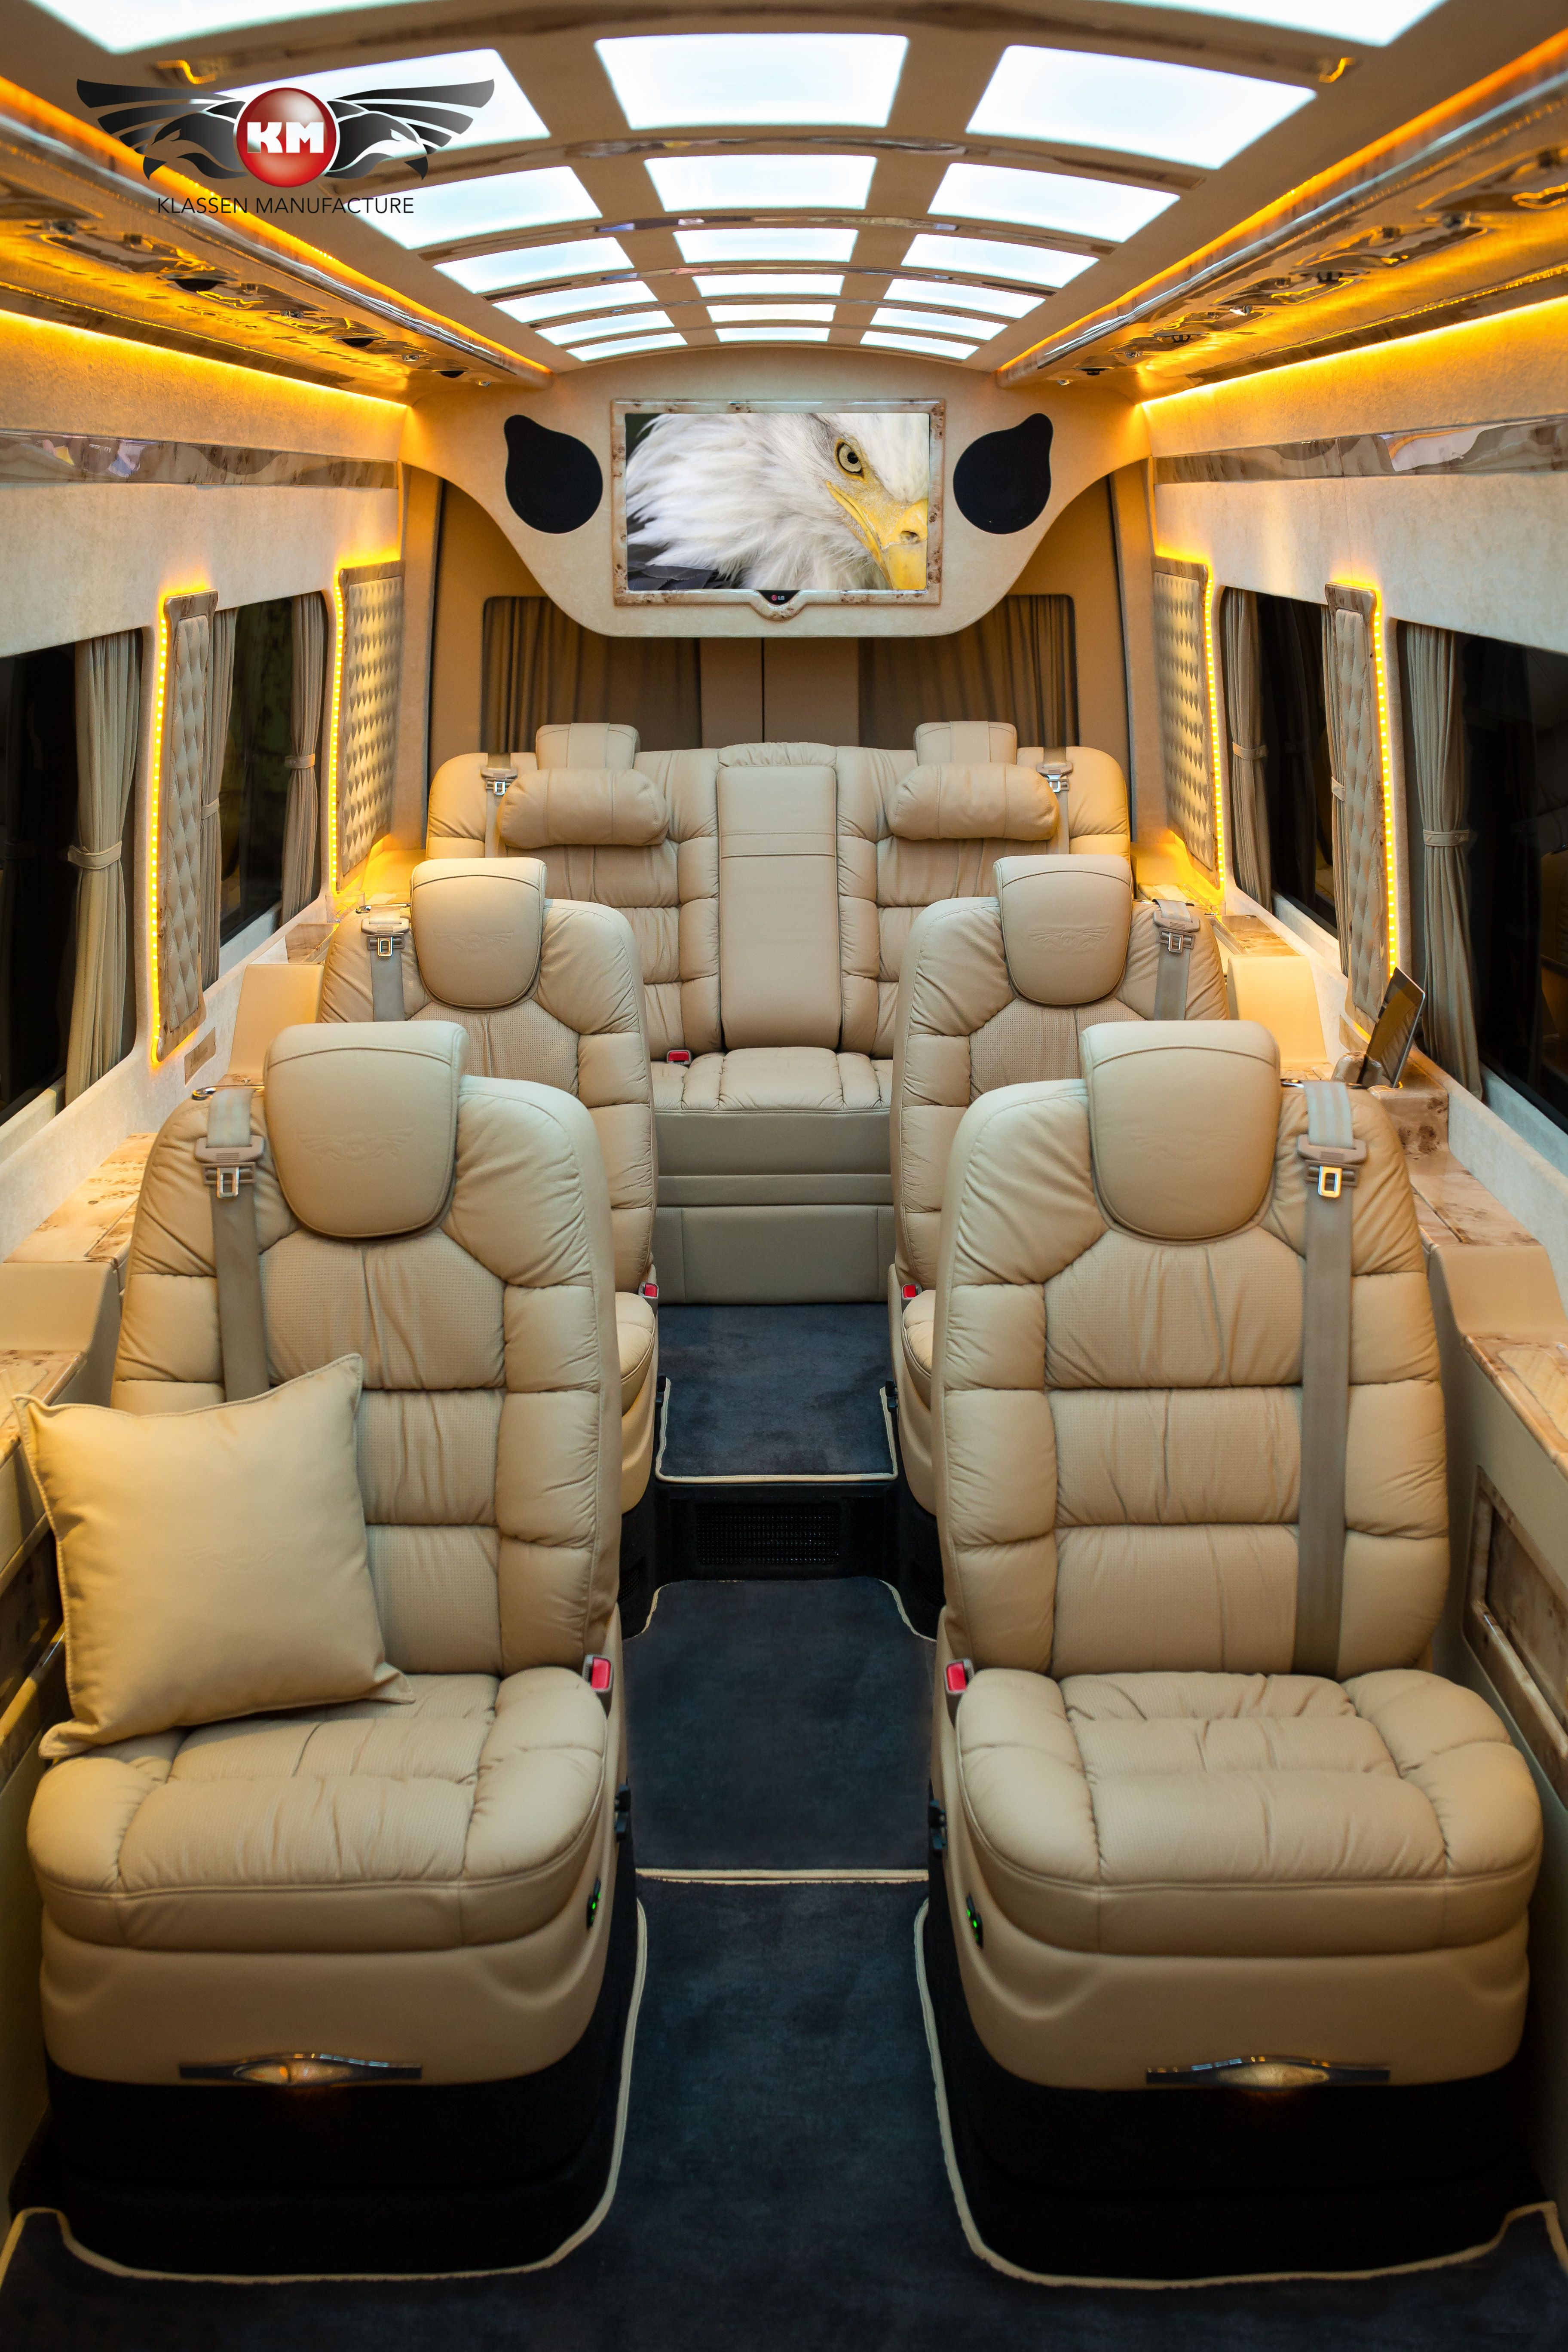 klassen manufacture luxury vip cars and vans with german quality and design exclusive. Black Bedroom Furniture Sets. Home Design Ideas